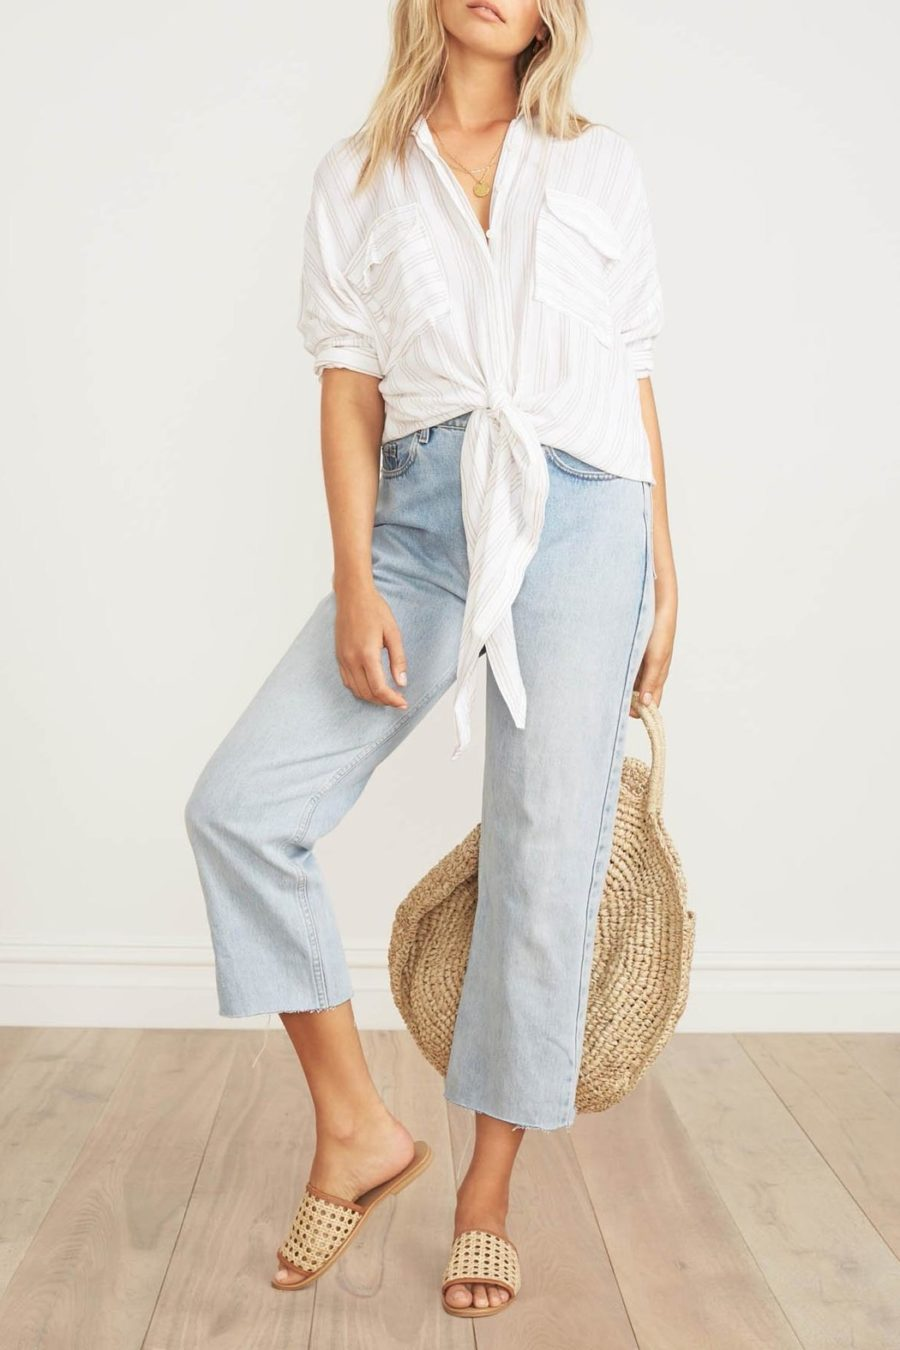 Crop Tops for Summer - Tie Waist Button Down // Notjessfashion.com